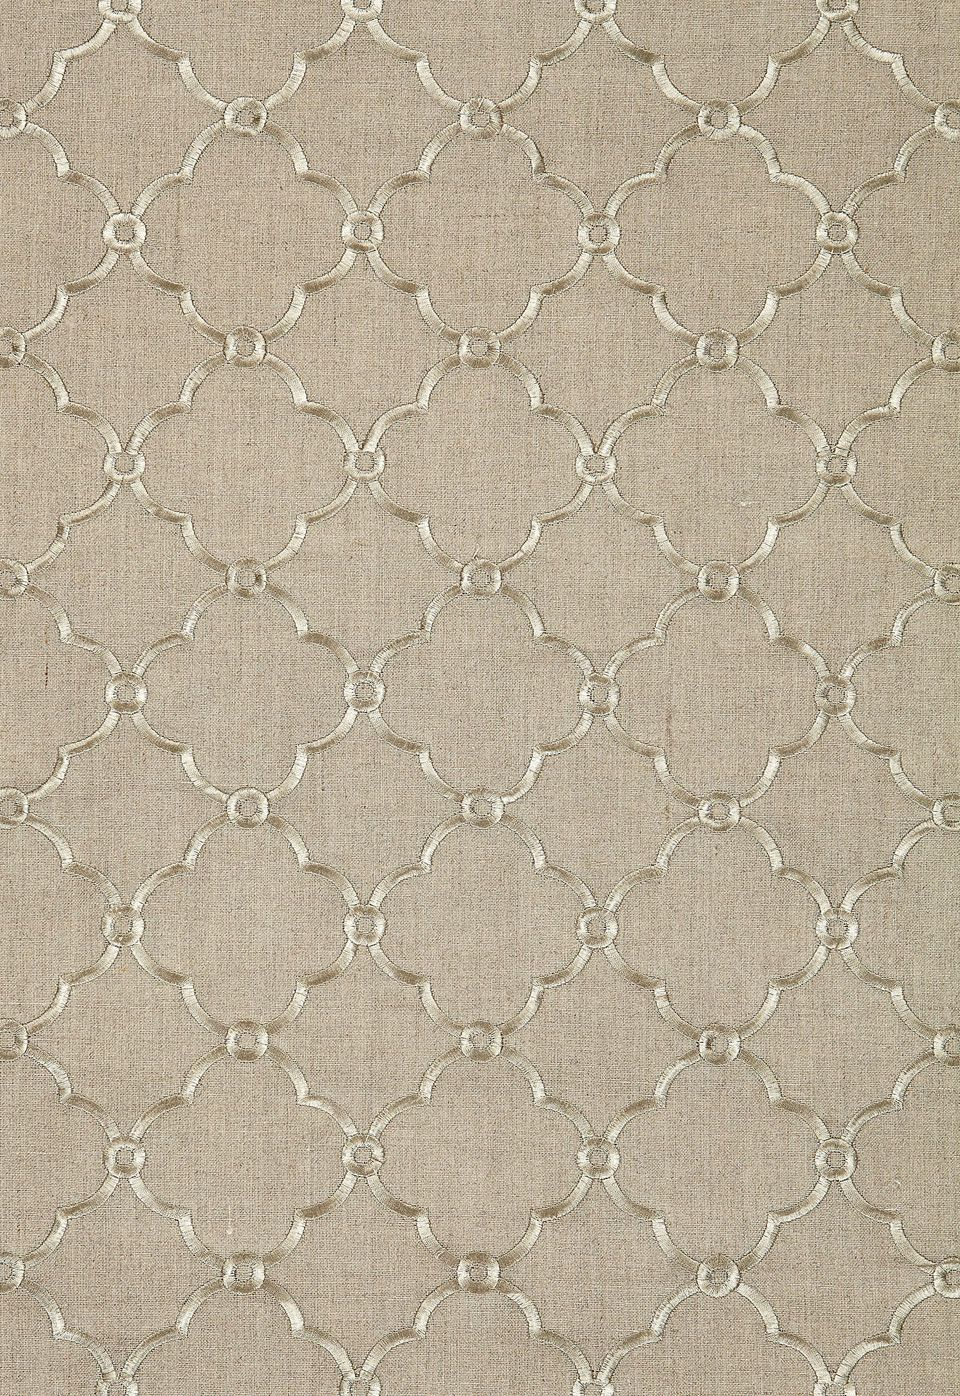 Fabric | Luxembourg Embroidery in Linen | Schumacher